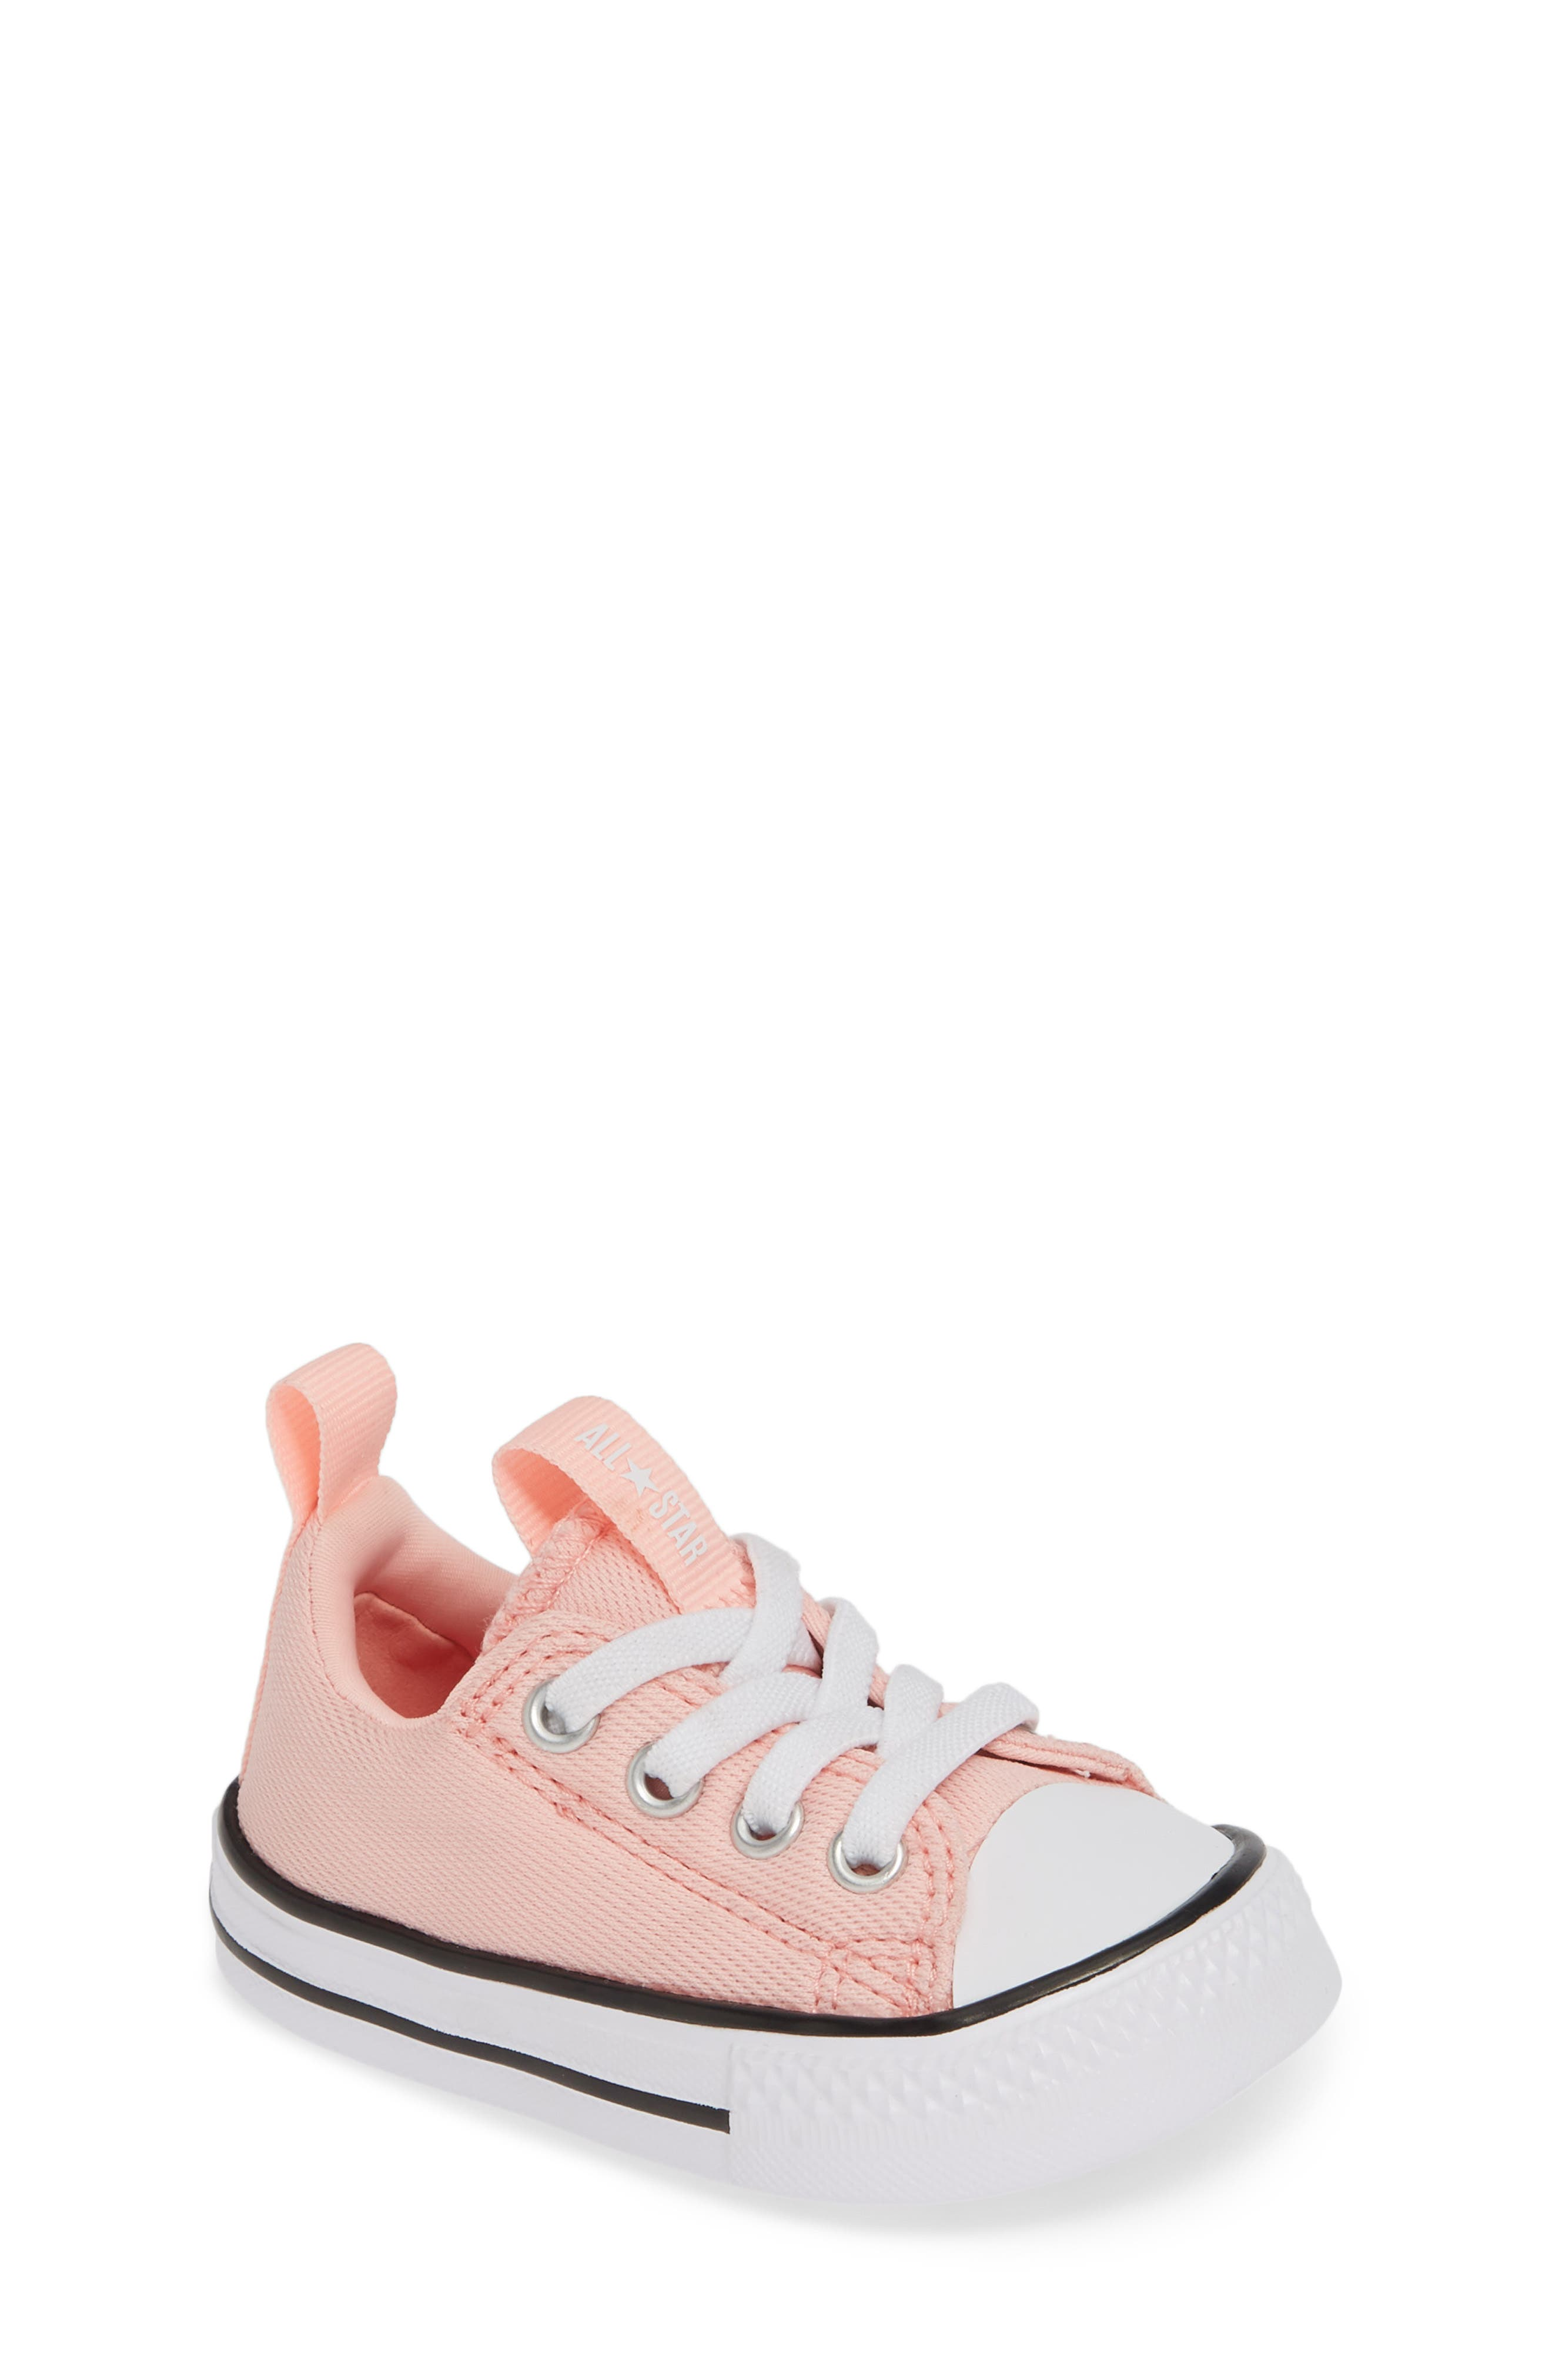 Toddler Converse Chuck Taylor All Star Superplay Sneaker Size 9 M  Pink